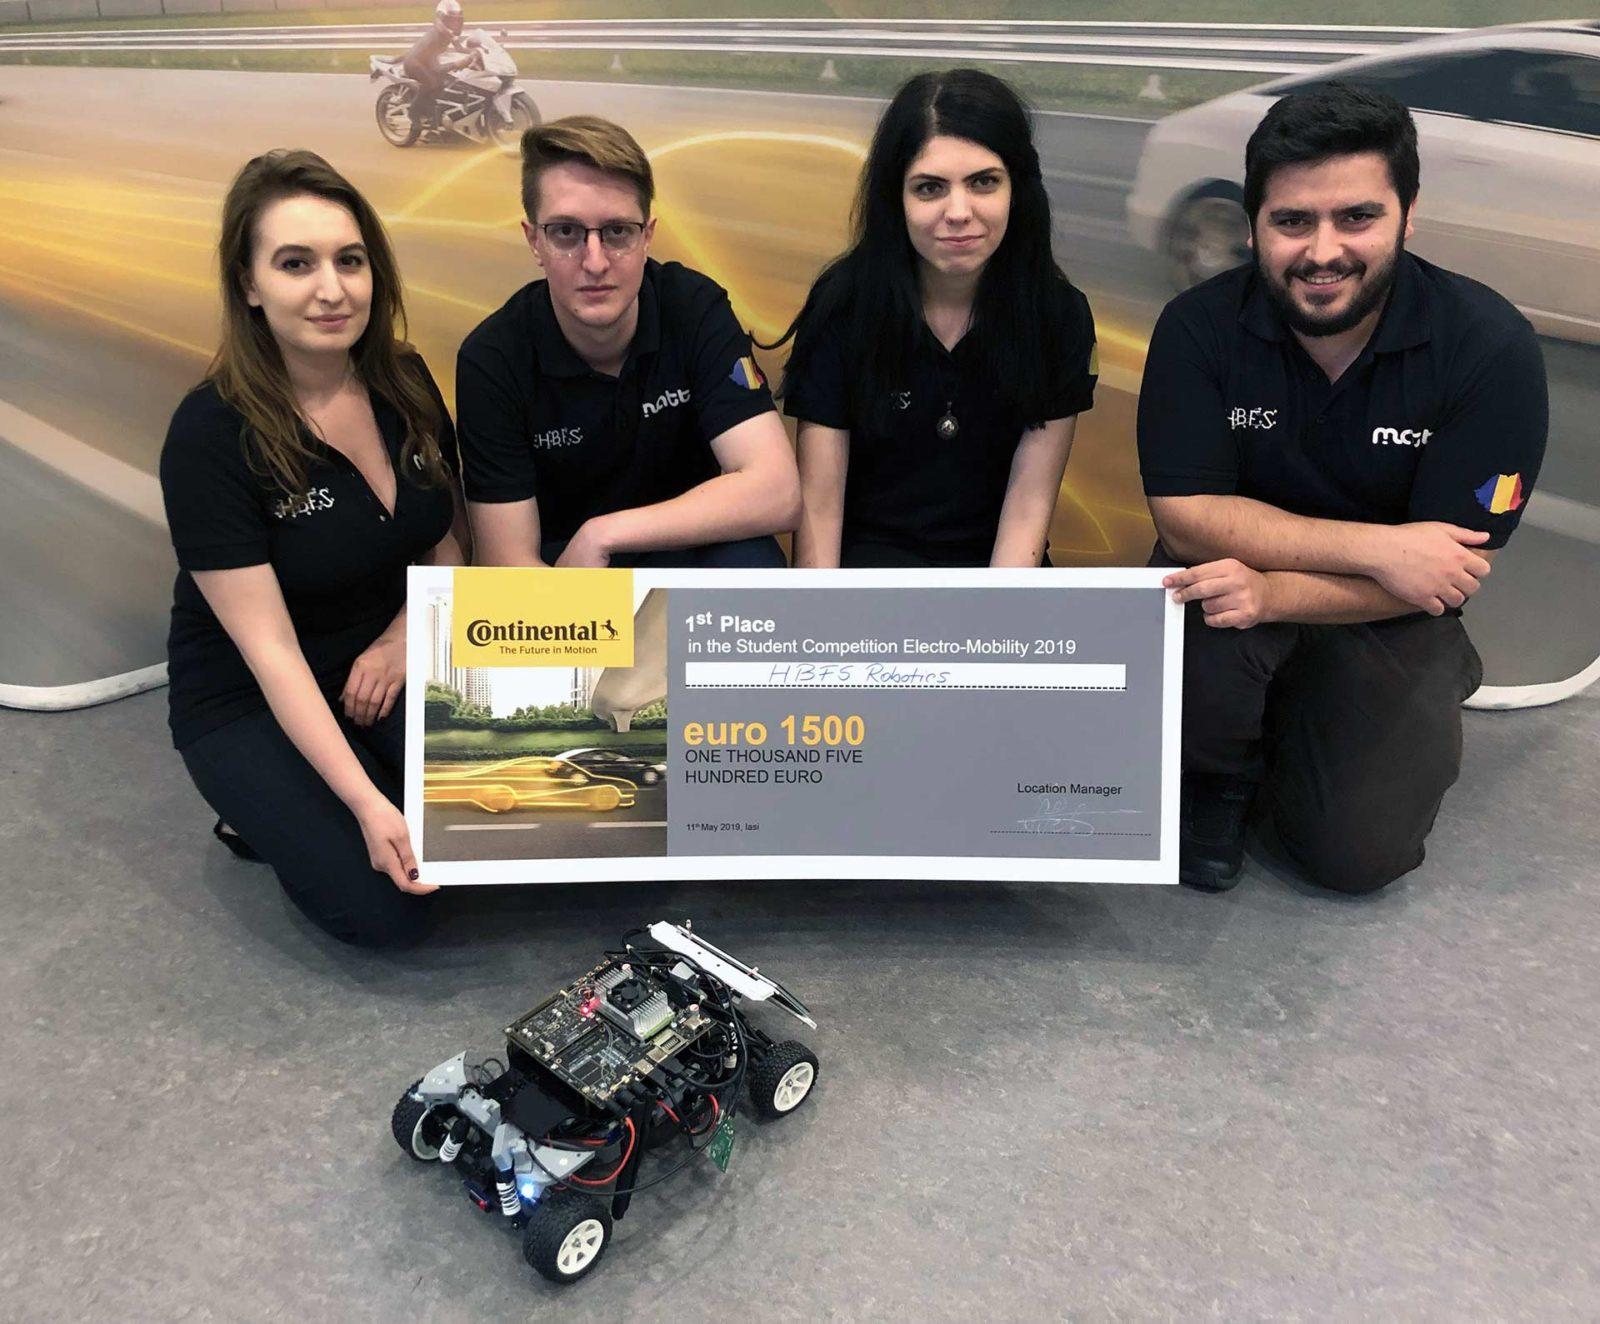 Electromobility continental winner team - HBFS